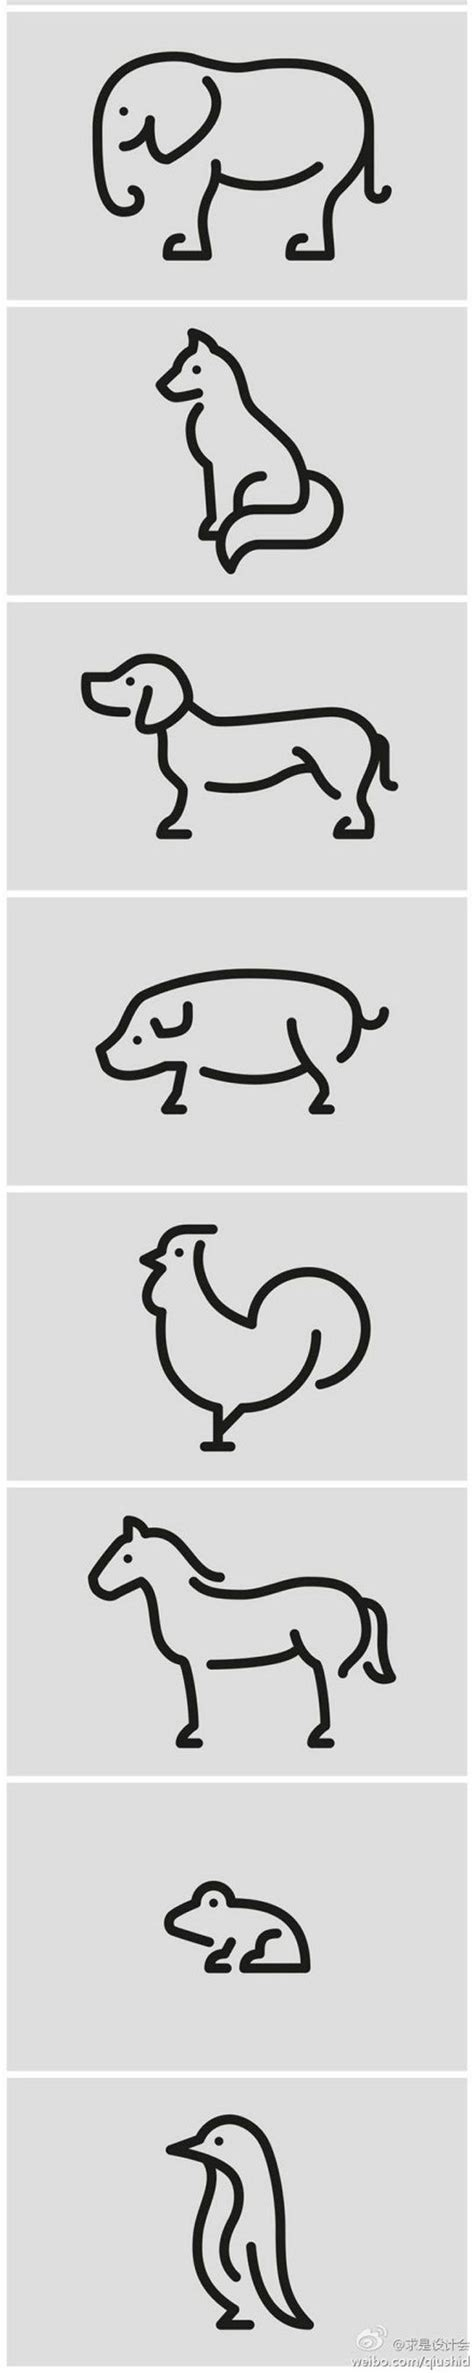 easy animal drawings ideas  pinterest